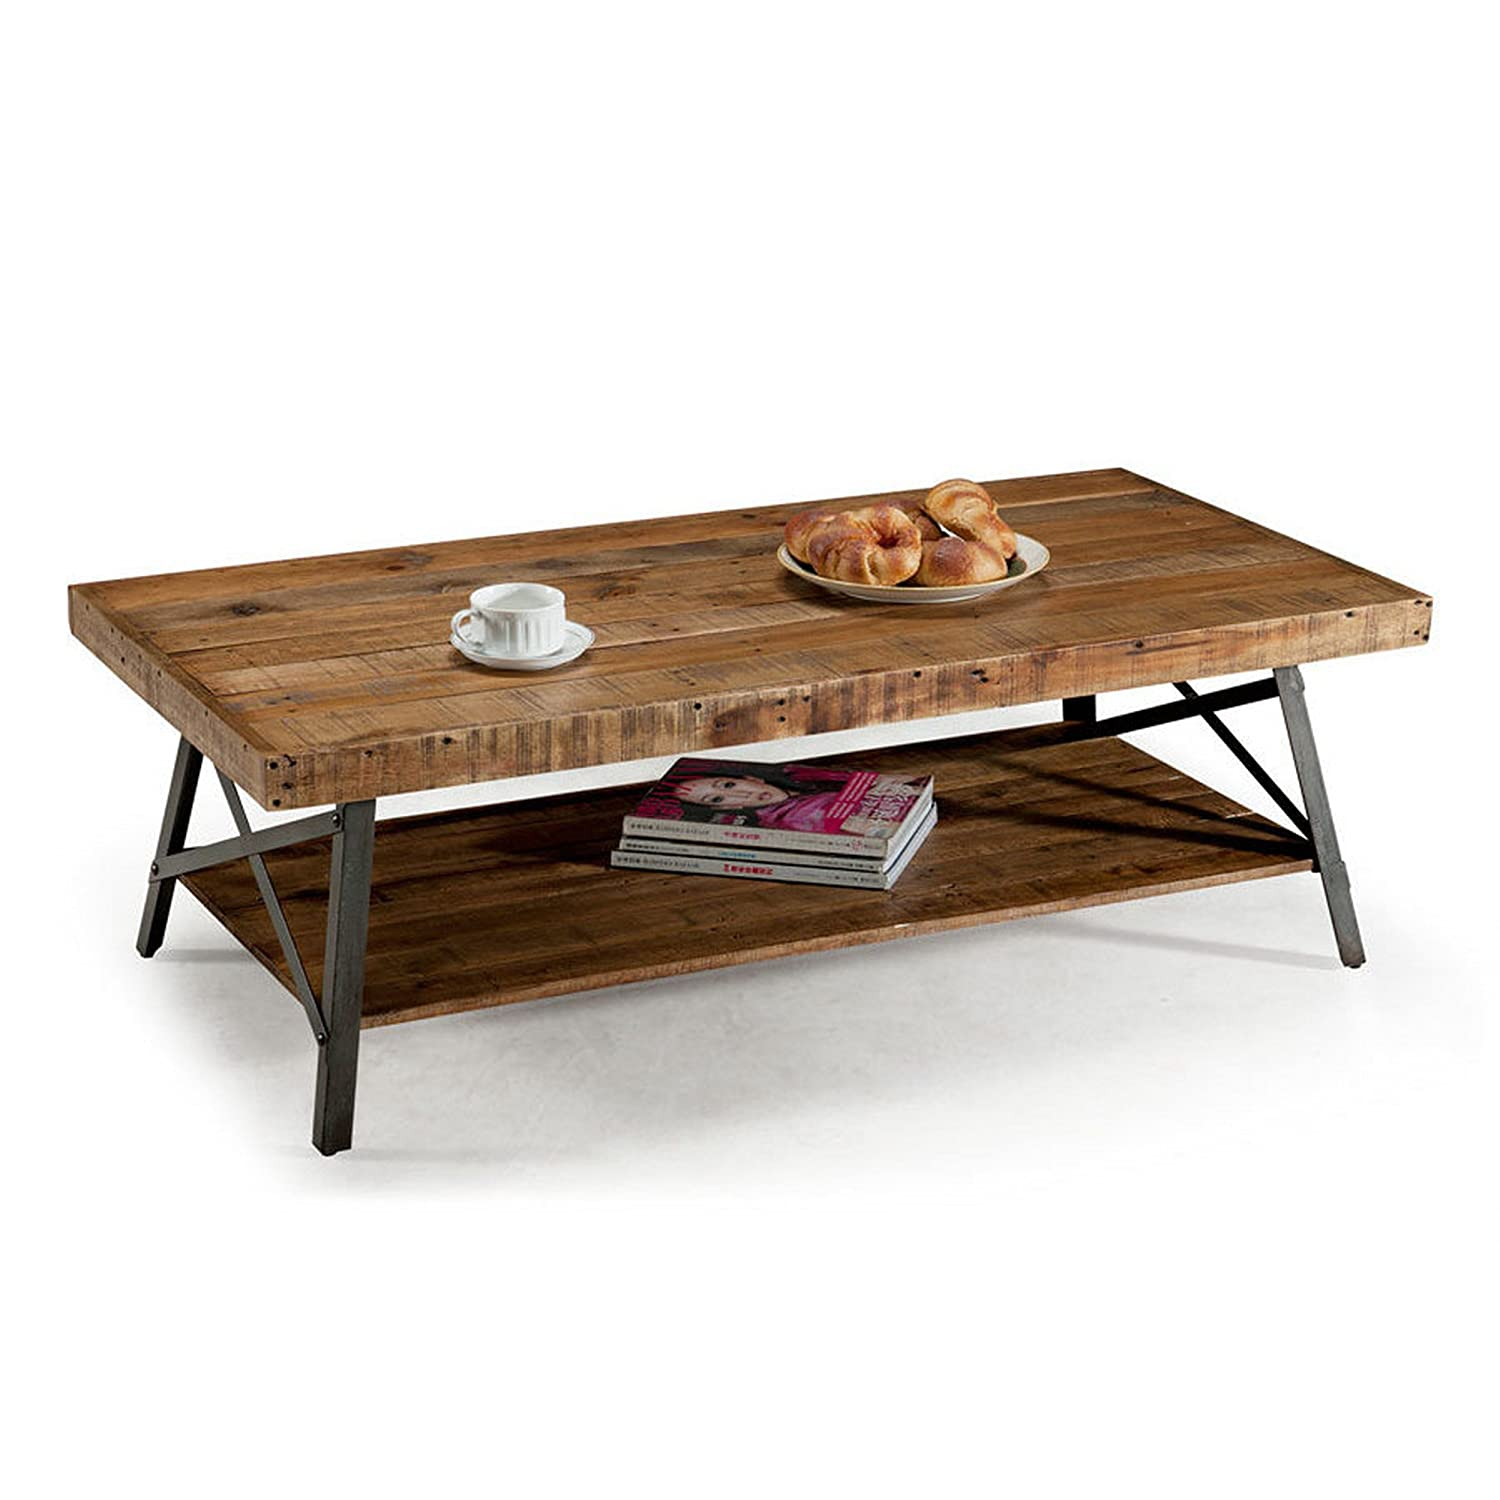 Reclaimed Wood Metal Coffee Table.Amazon Com Modhaus Living Contemporary Style Rustic Reclaimed Wood